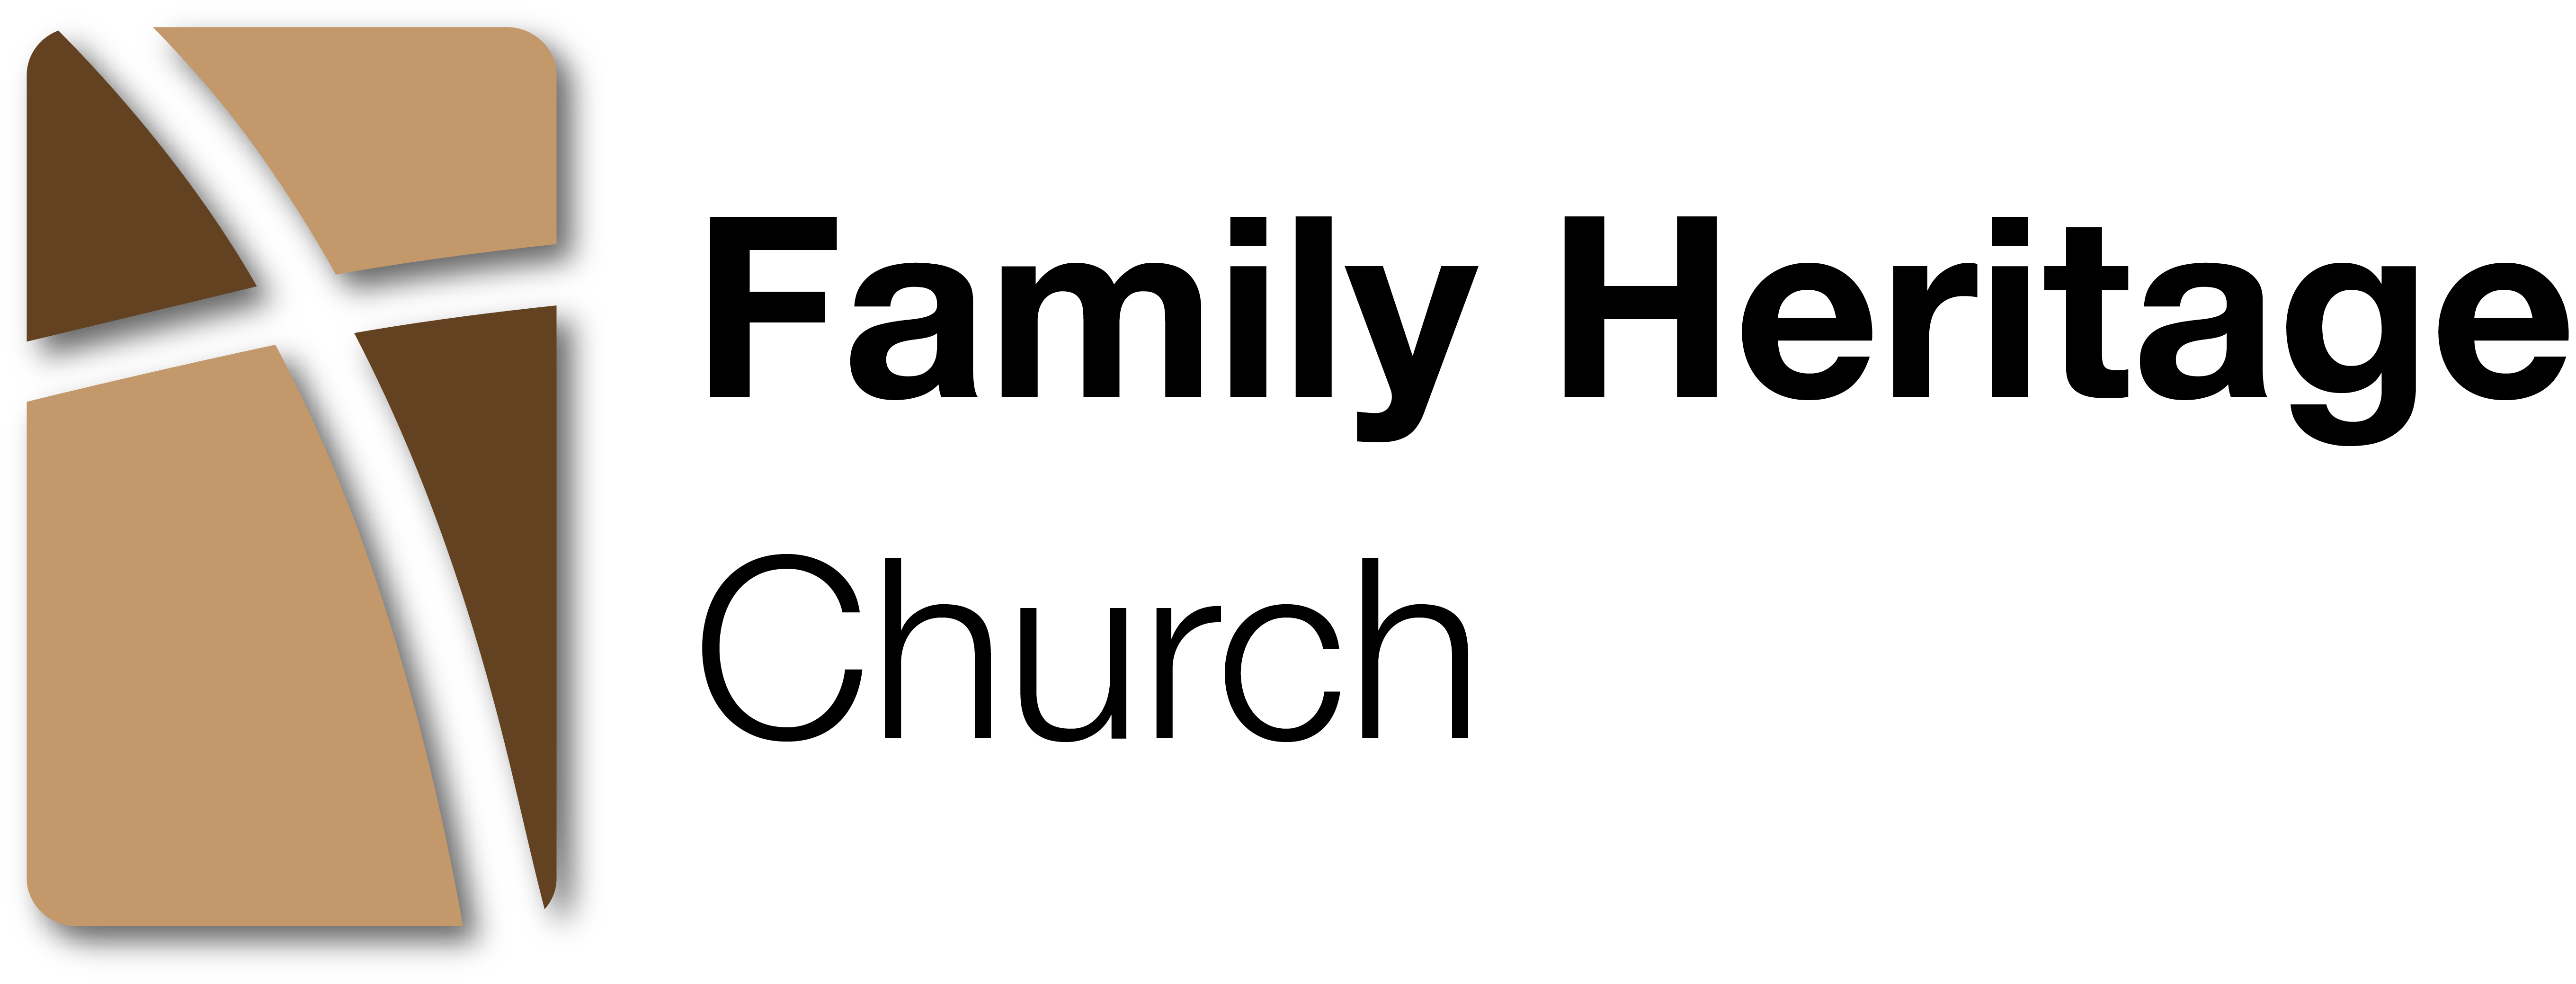 Family Heritage Church